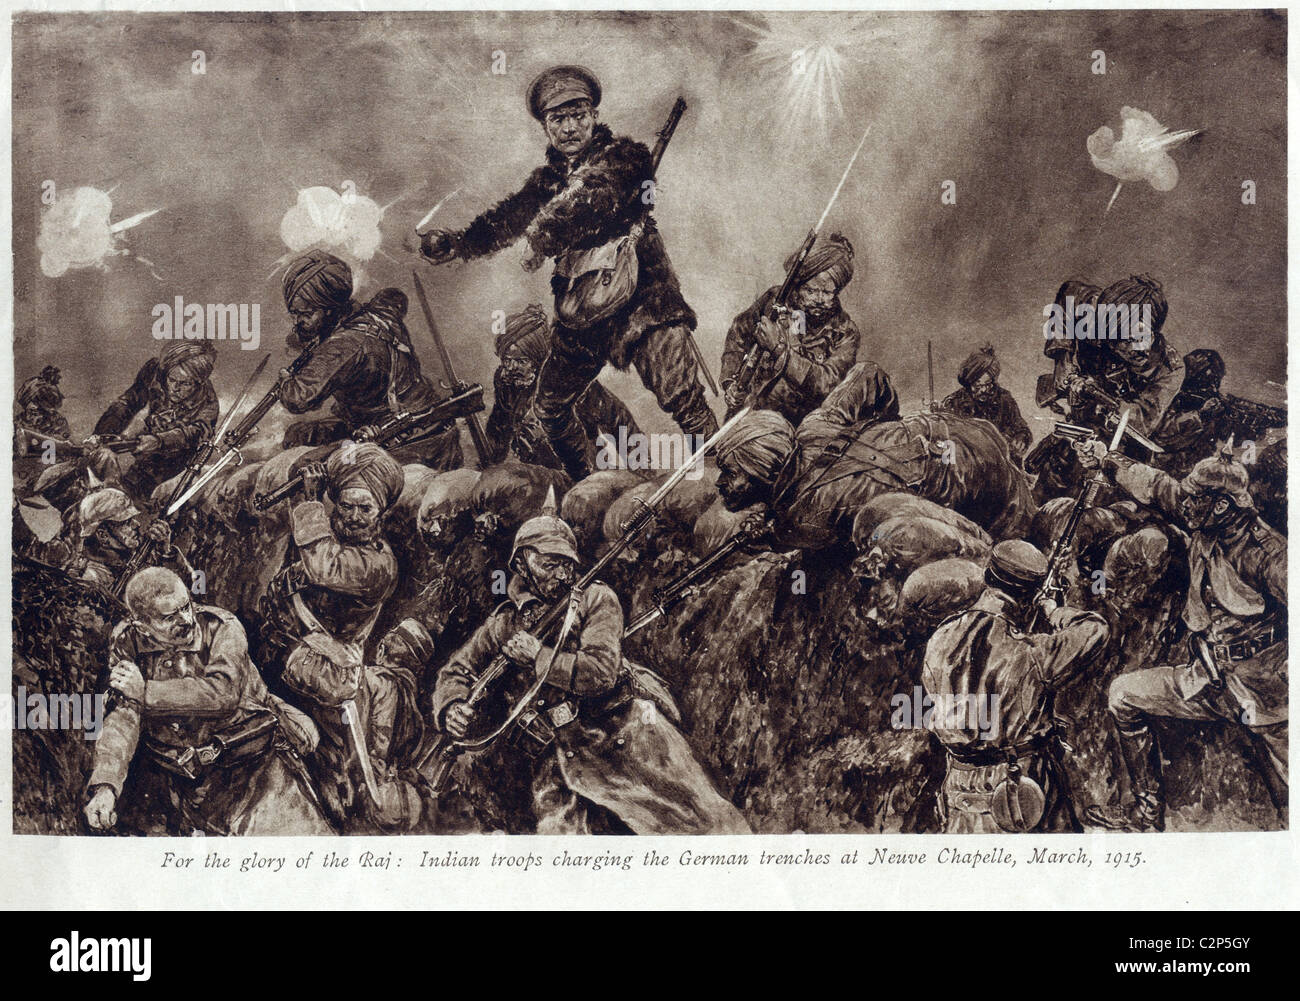 Illustration of an attack by indian troops on German trenches WW1 - Stock Image